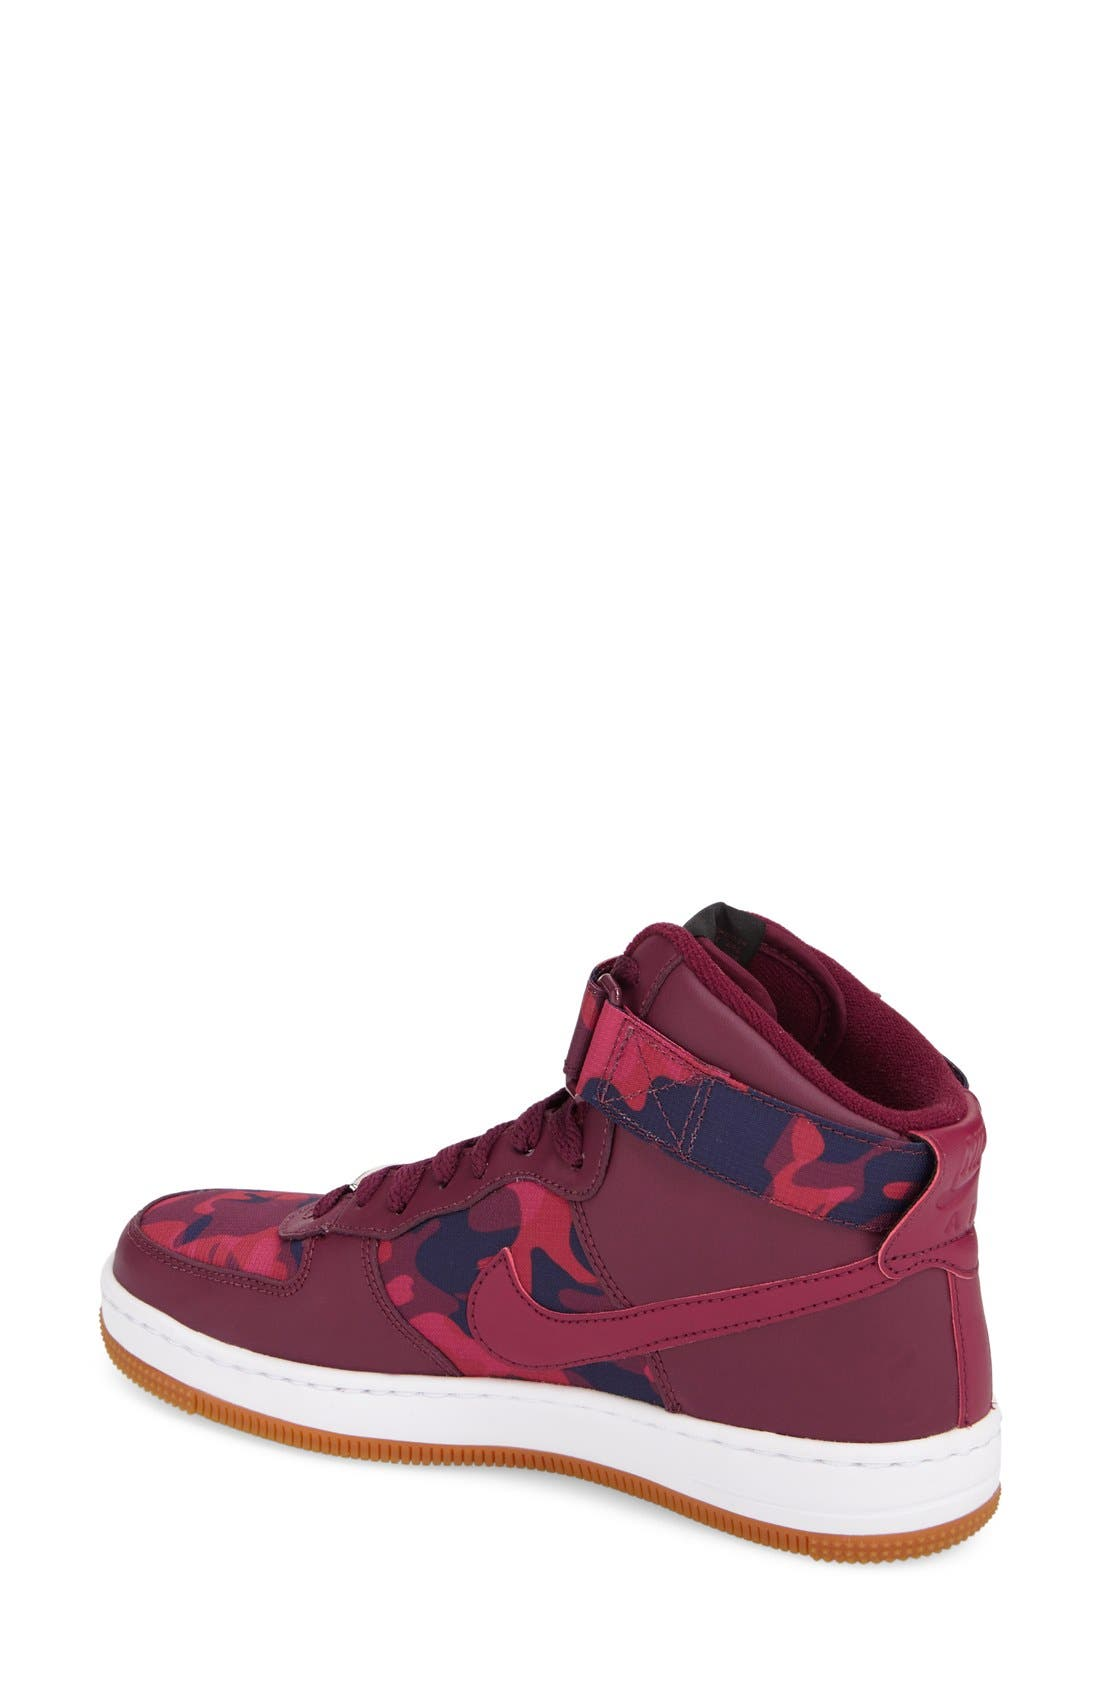 Alternate Image 2  - Nike 'AF-1 Ultra Force' Sneaker (Women)